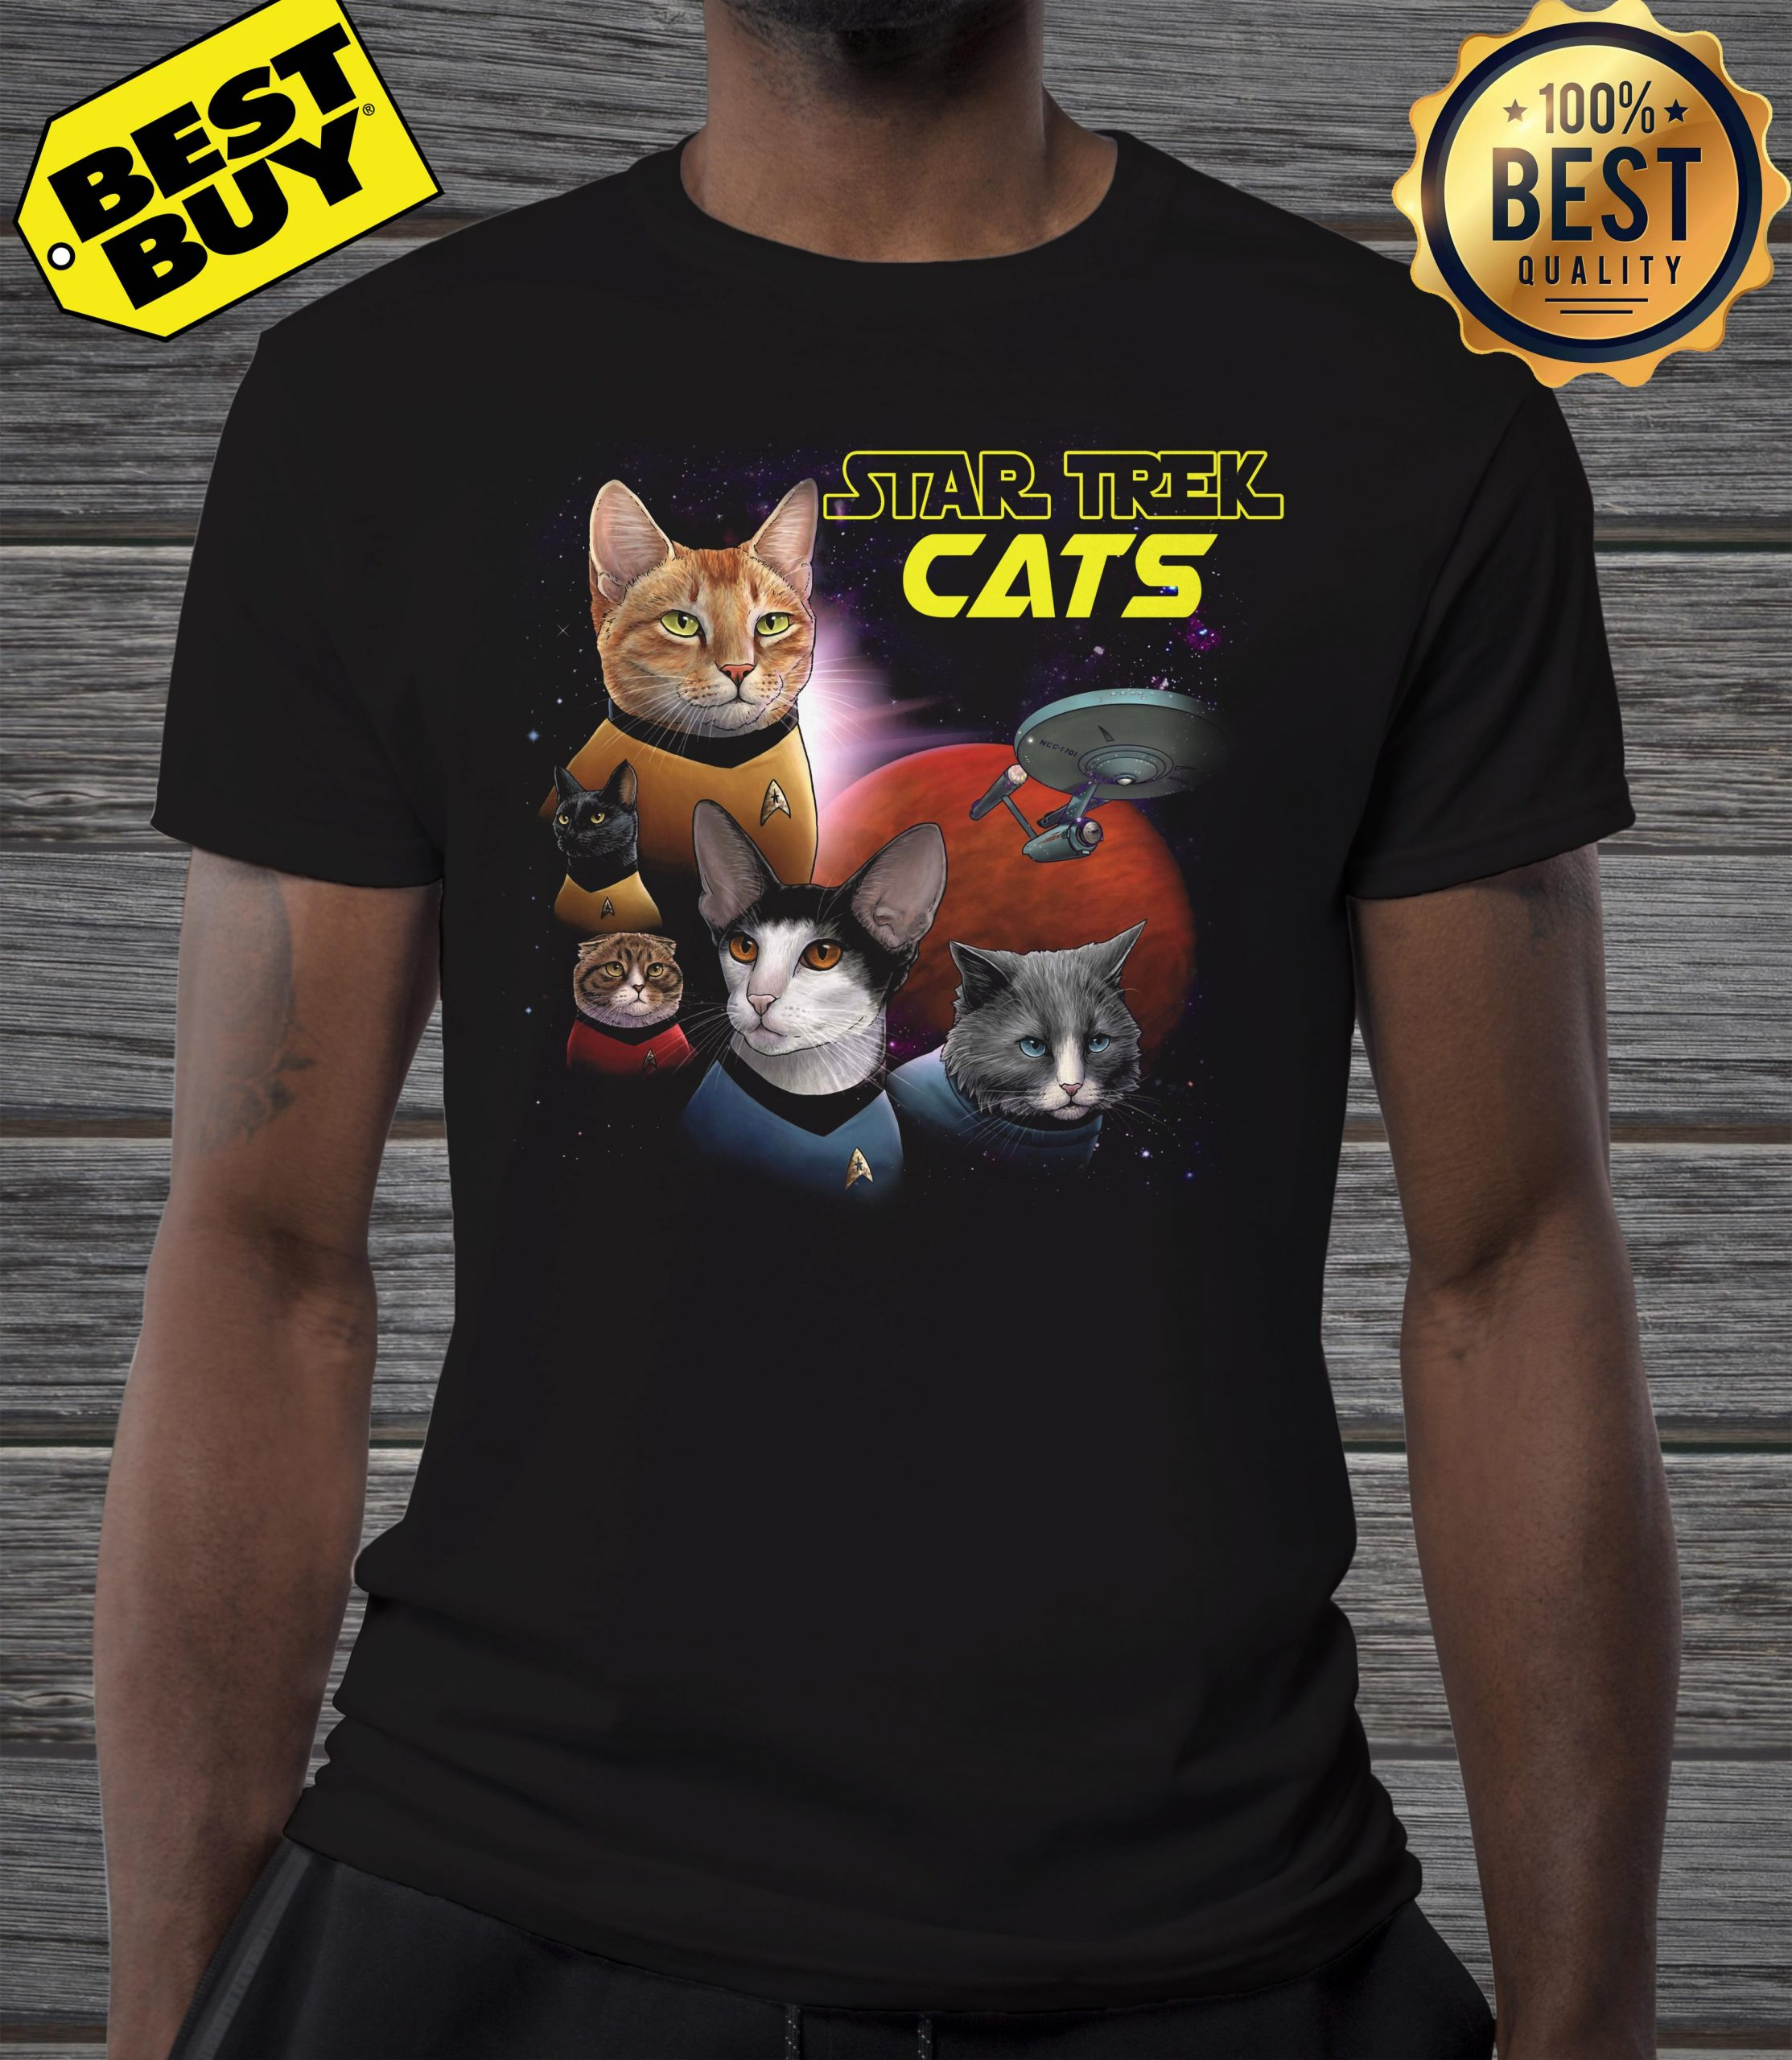 Star Trek Cats Books And Merch shirt